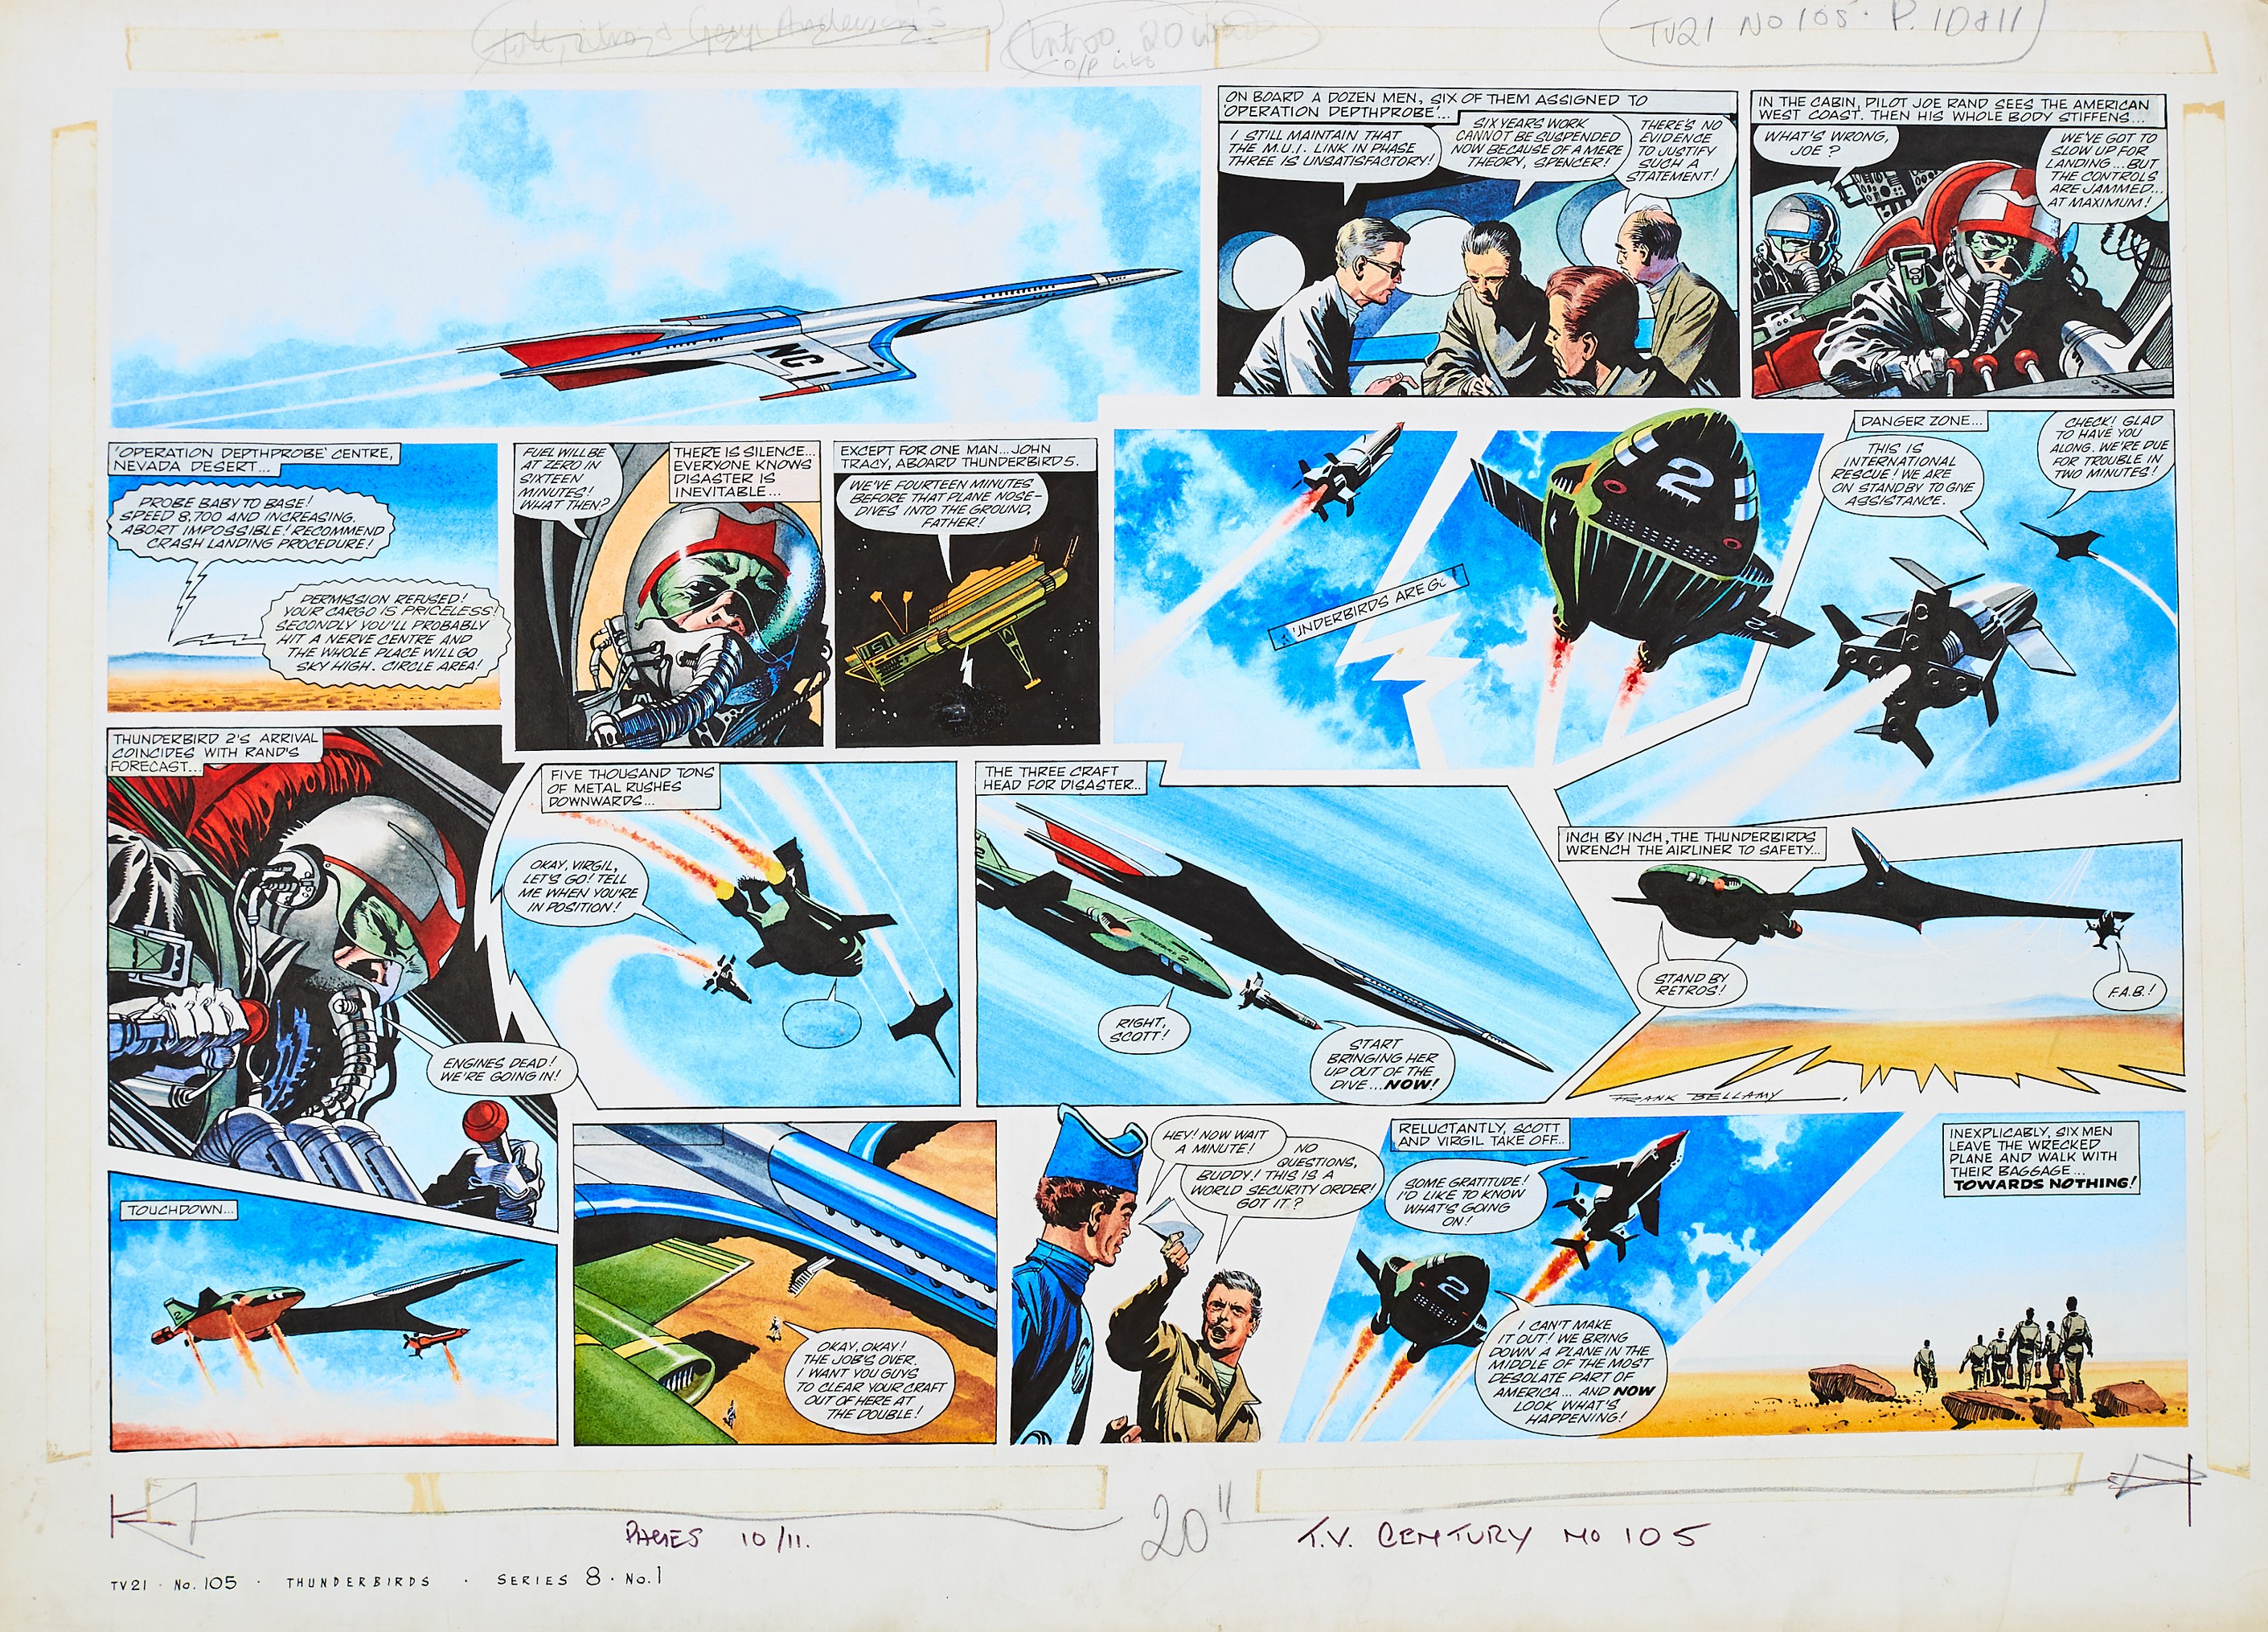 Lot 116 - Thunderbirds original double page artwork (1967) drawn, painted and signed by Frank Bellamy for TV